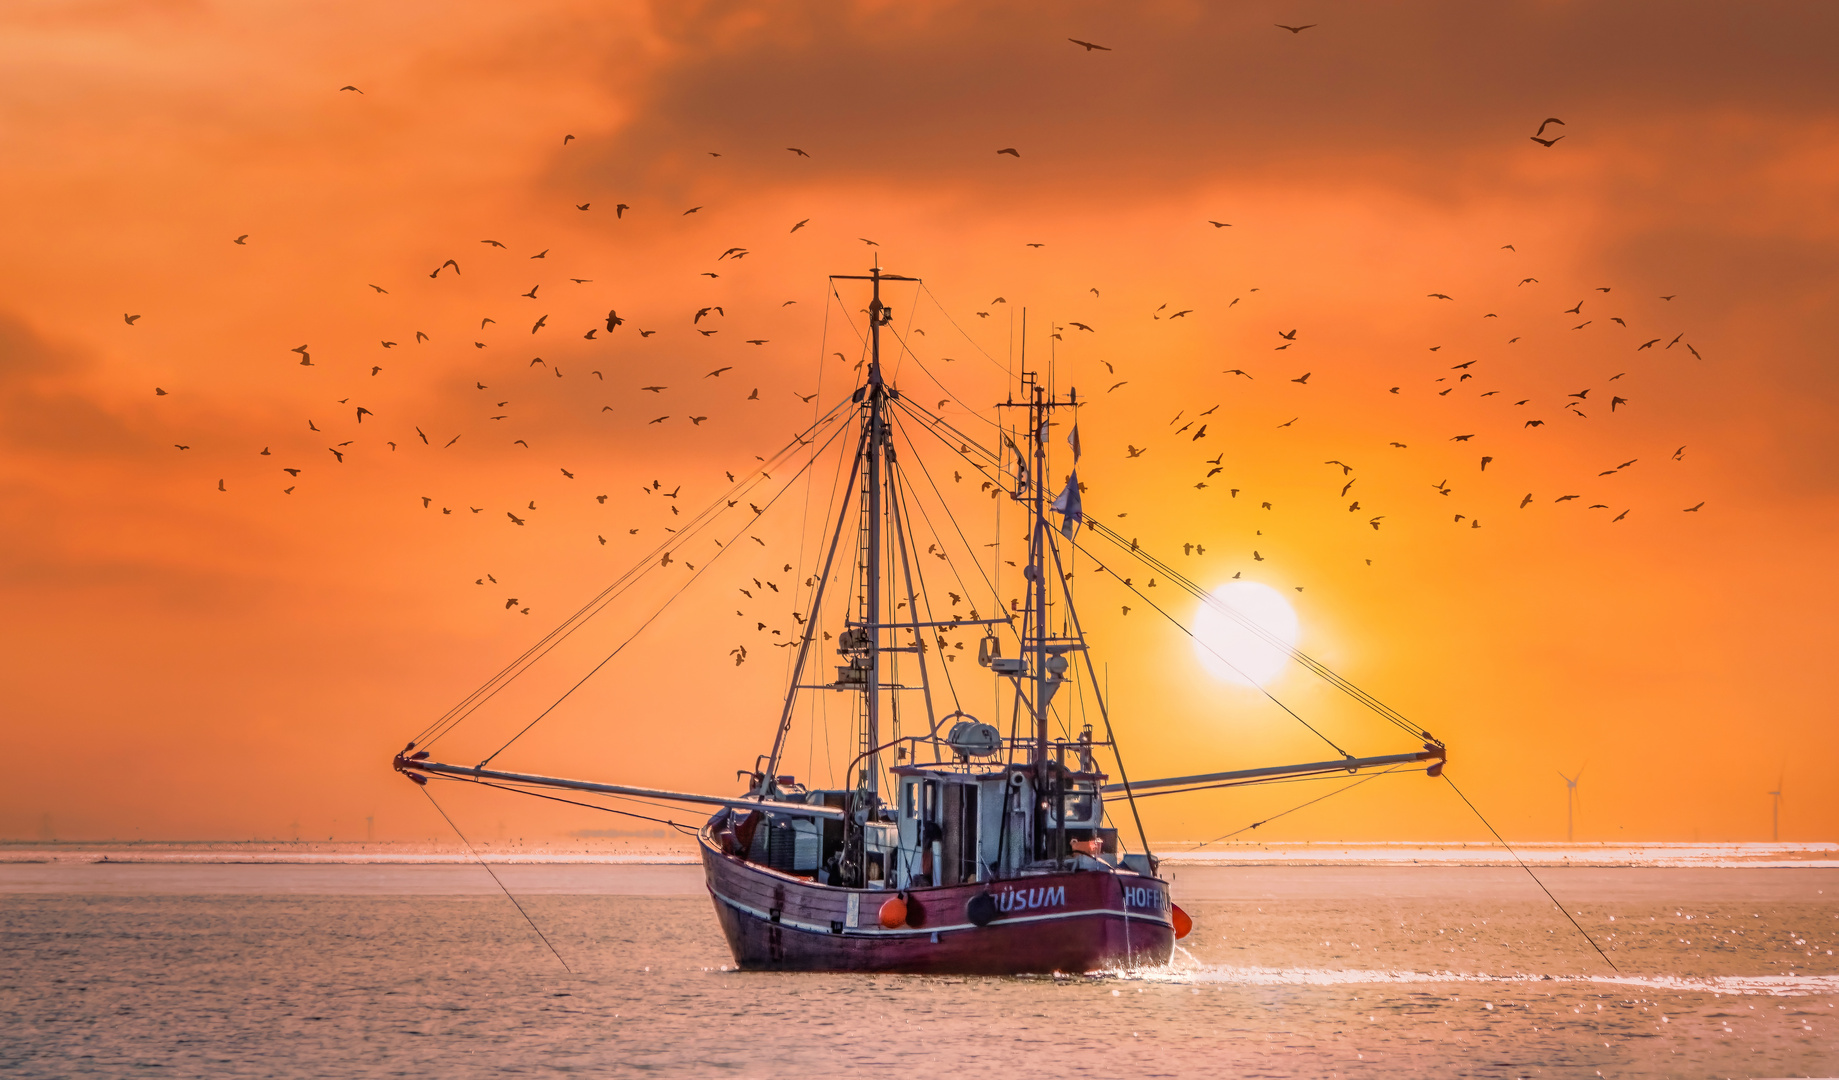 Helgoland #5 (Fishing boat on its way home)